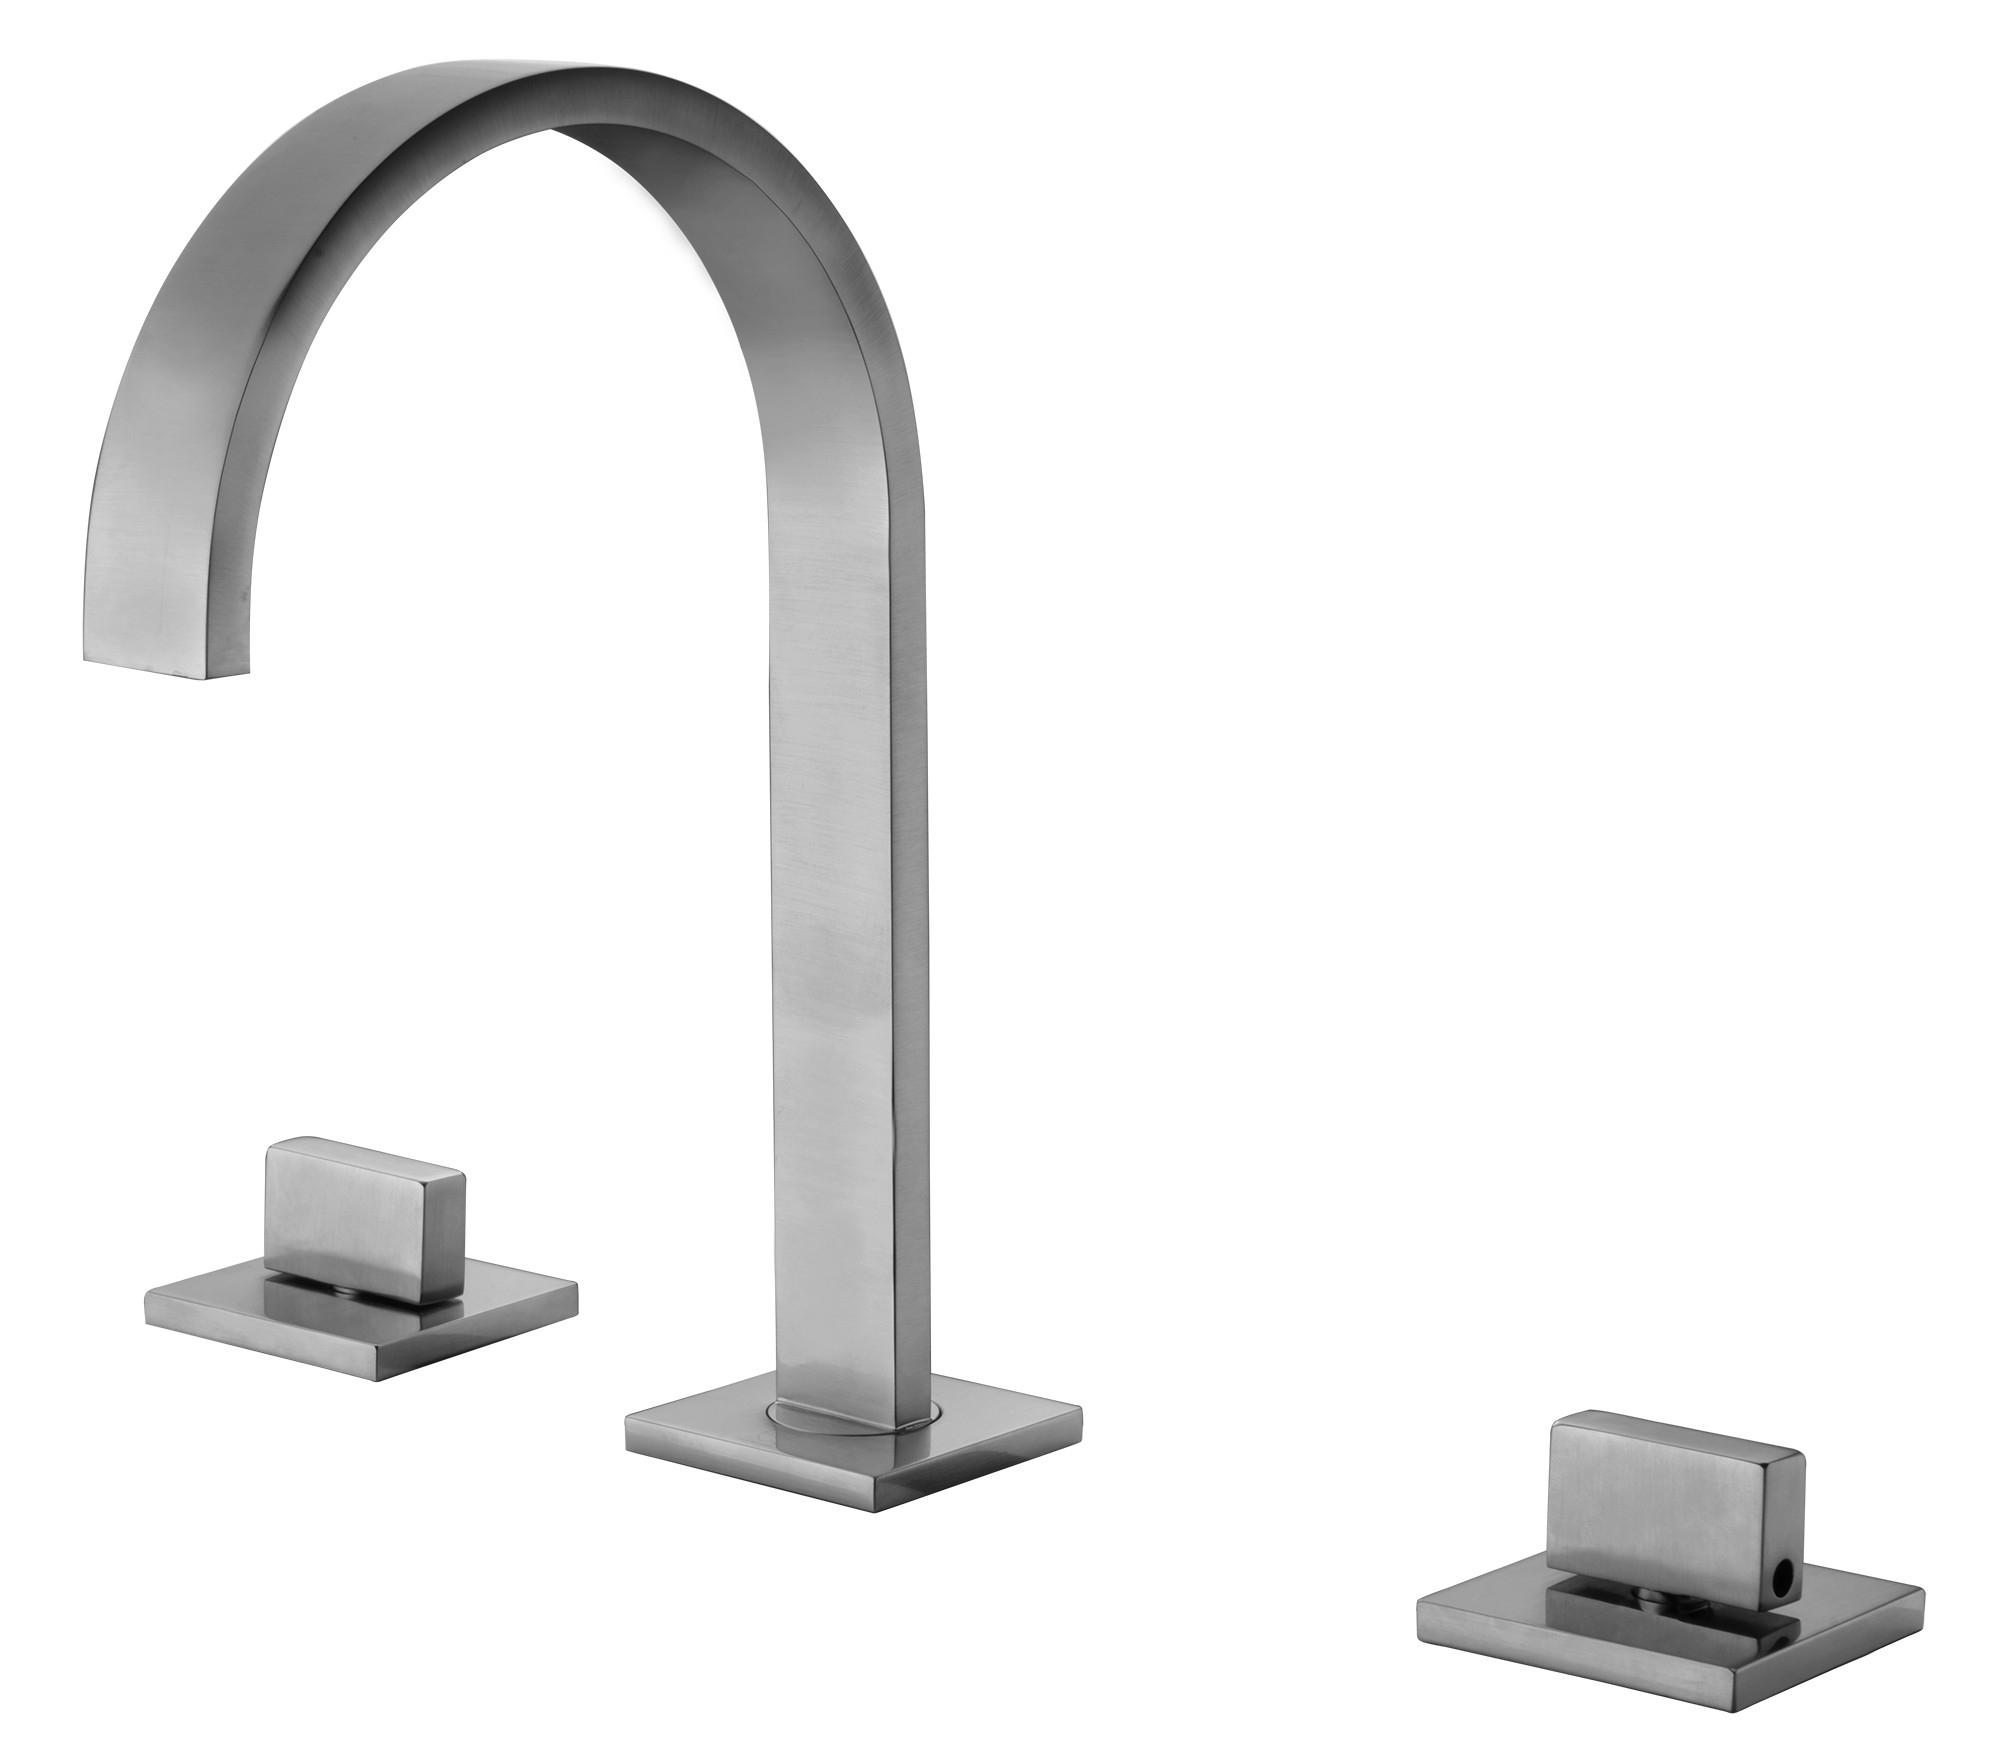 ALFI brand AB1336-BN Brushed Nickel Gooseneck Widespread Bathroom Faucet